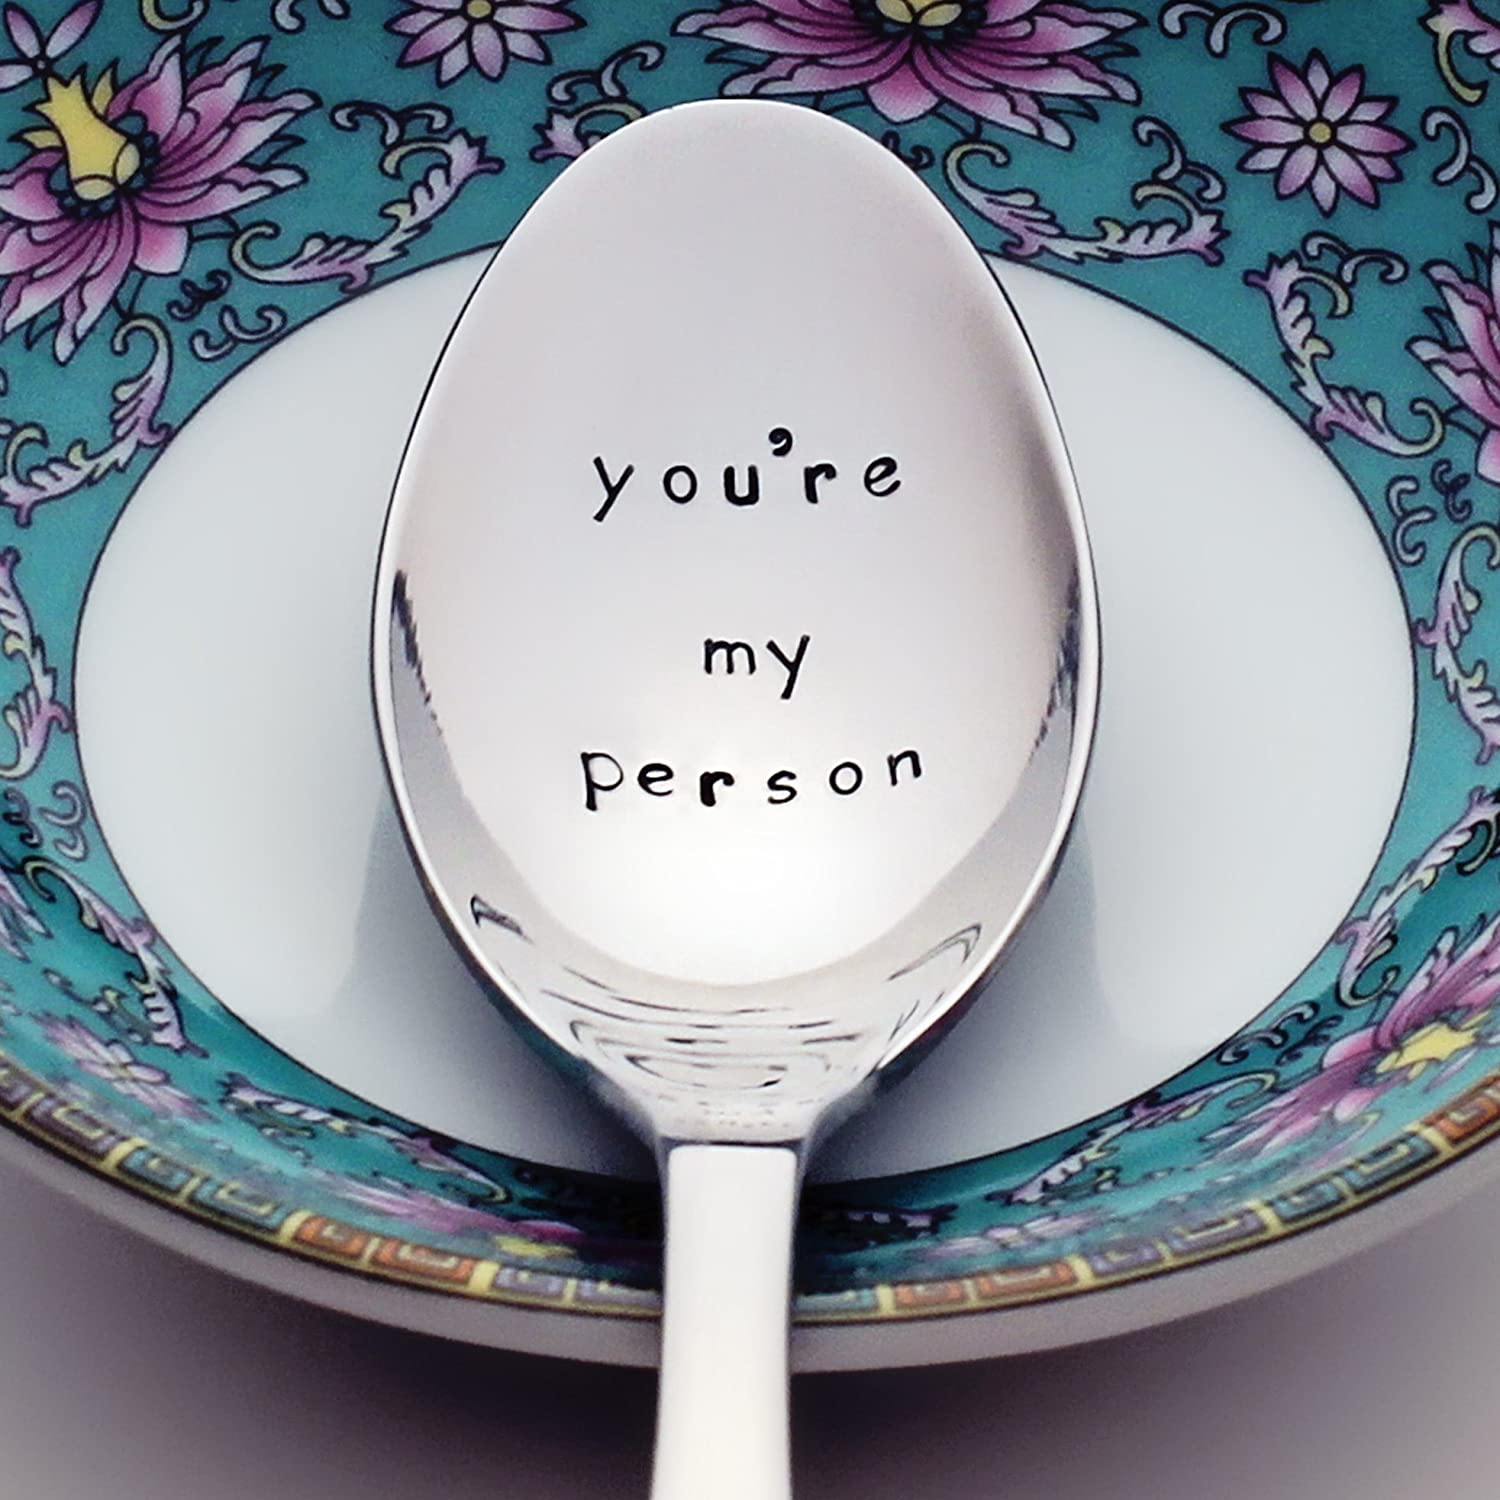 You're My Person - Grey's Anatomy Inspired Stainless Steel Stamped Spoon | Stamped Silverware | Unique Birthday Gifts for Her and Friends | Mother's Day Gift for Mom